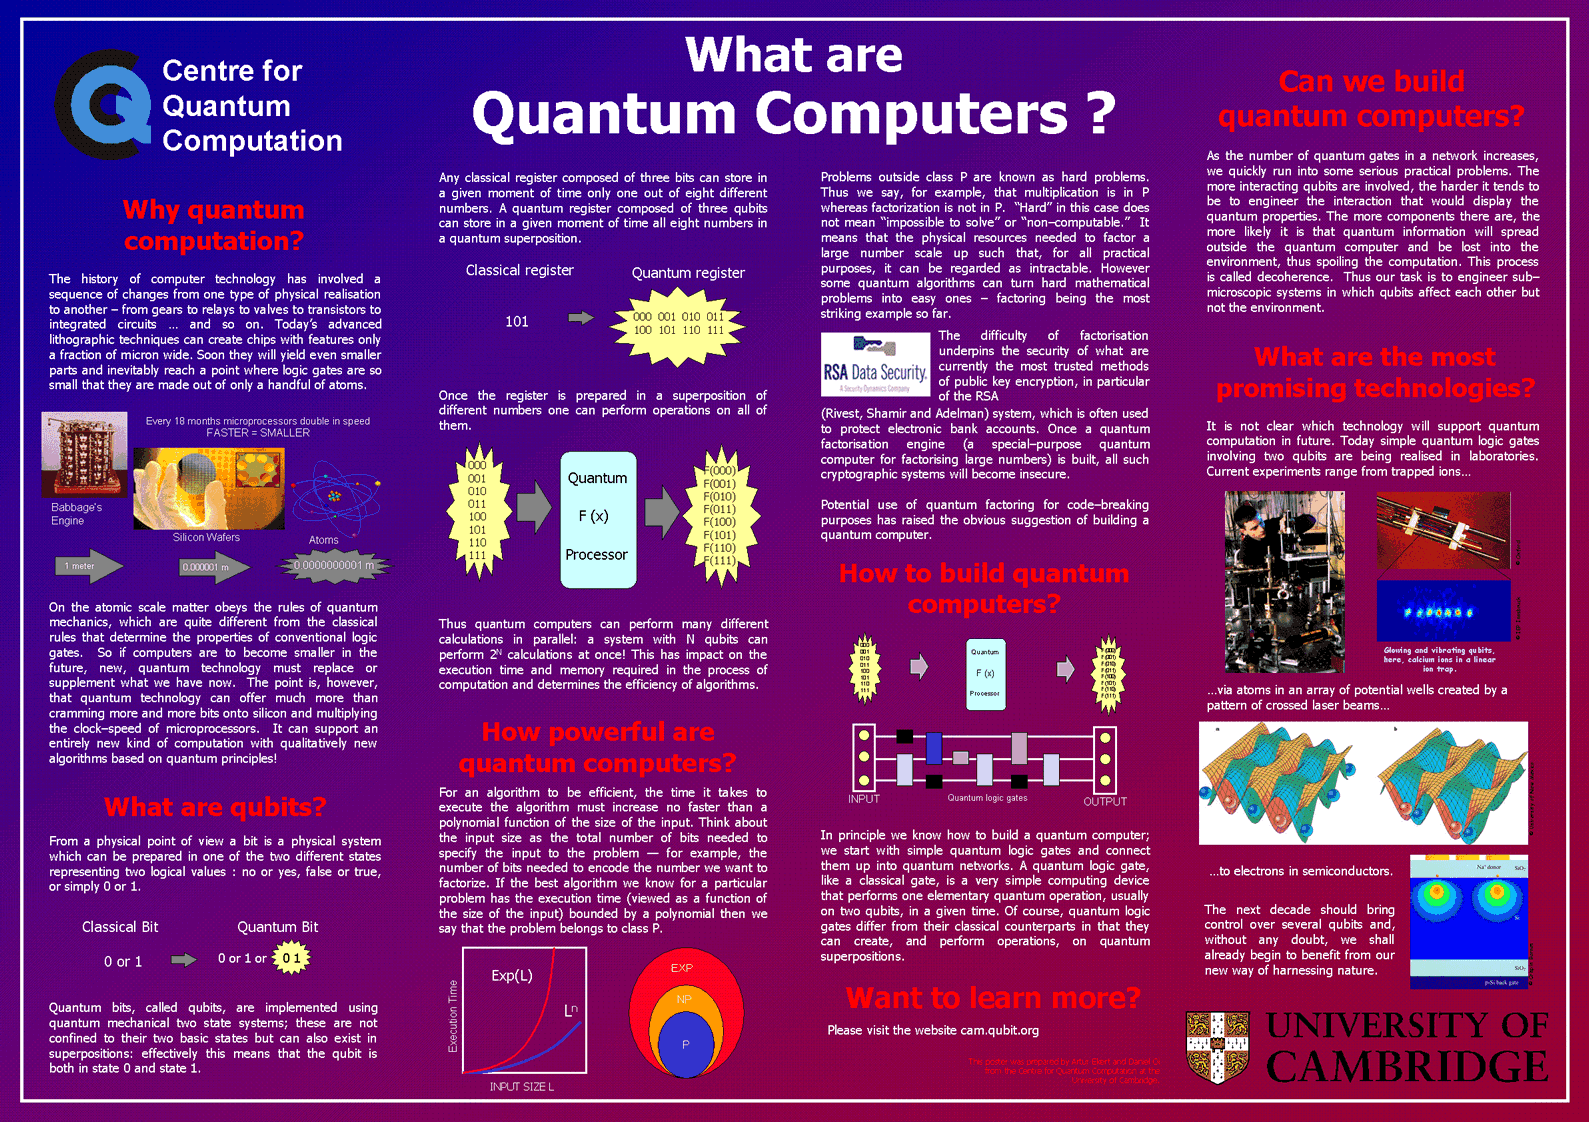 pub_cqc_cambridge_quantum_computing_explained_lg